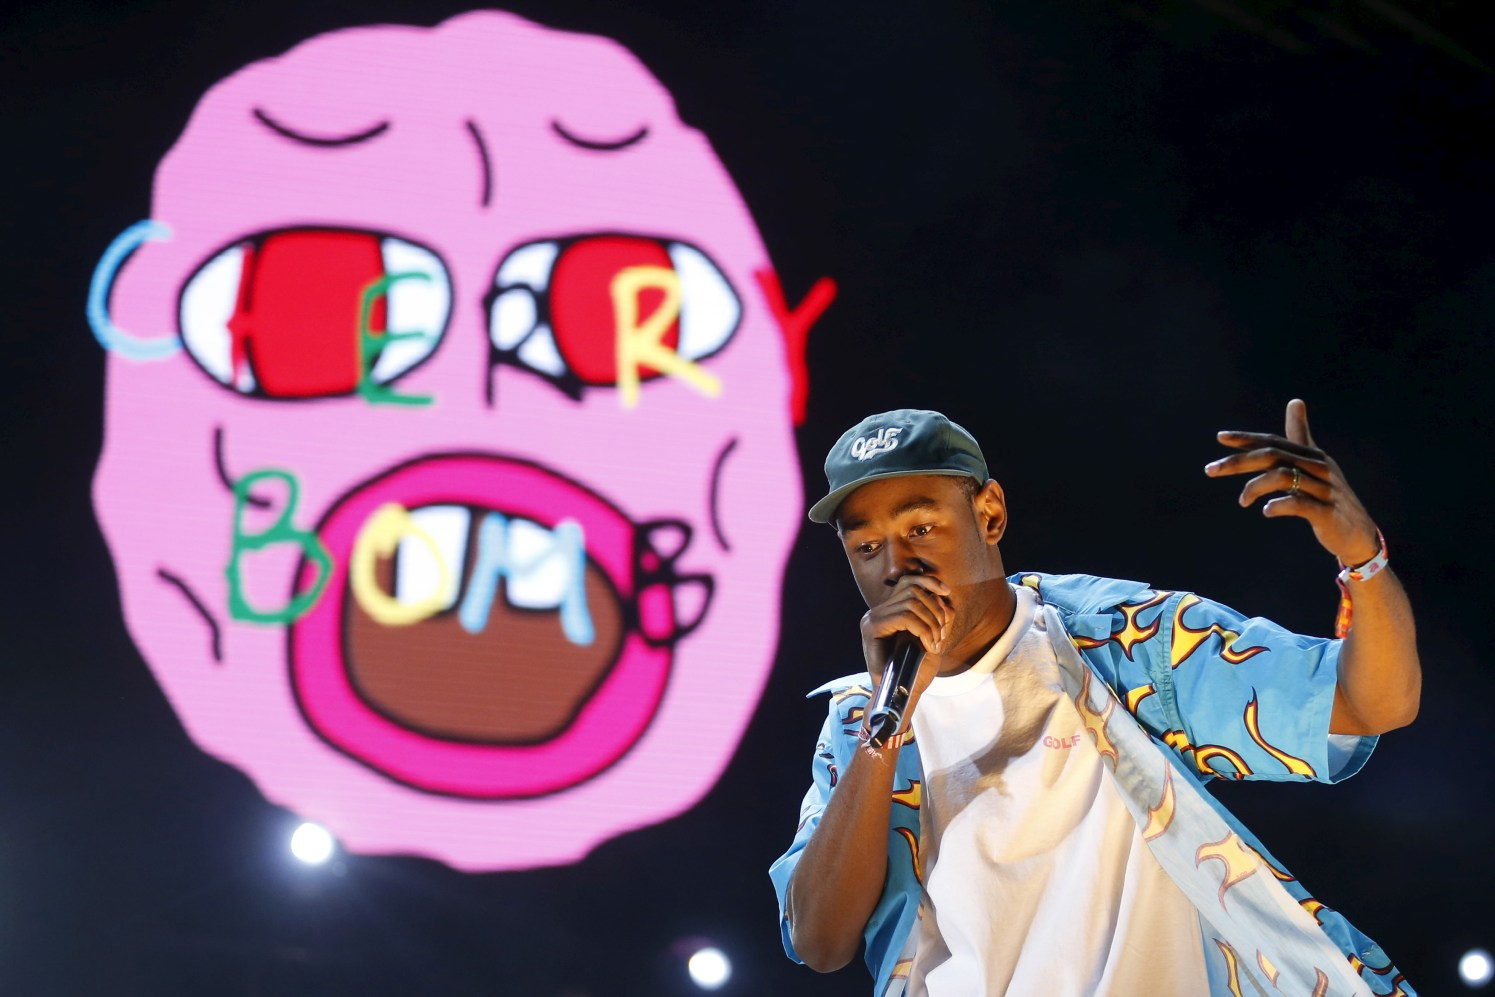 Tyler the Creator performs on a stage set giant bed at the Coachella Valley Music and Arts Festival in Indio